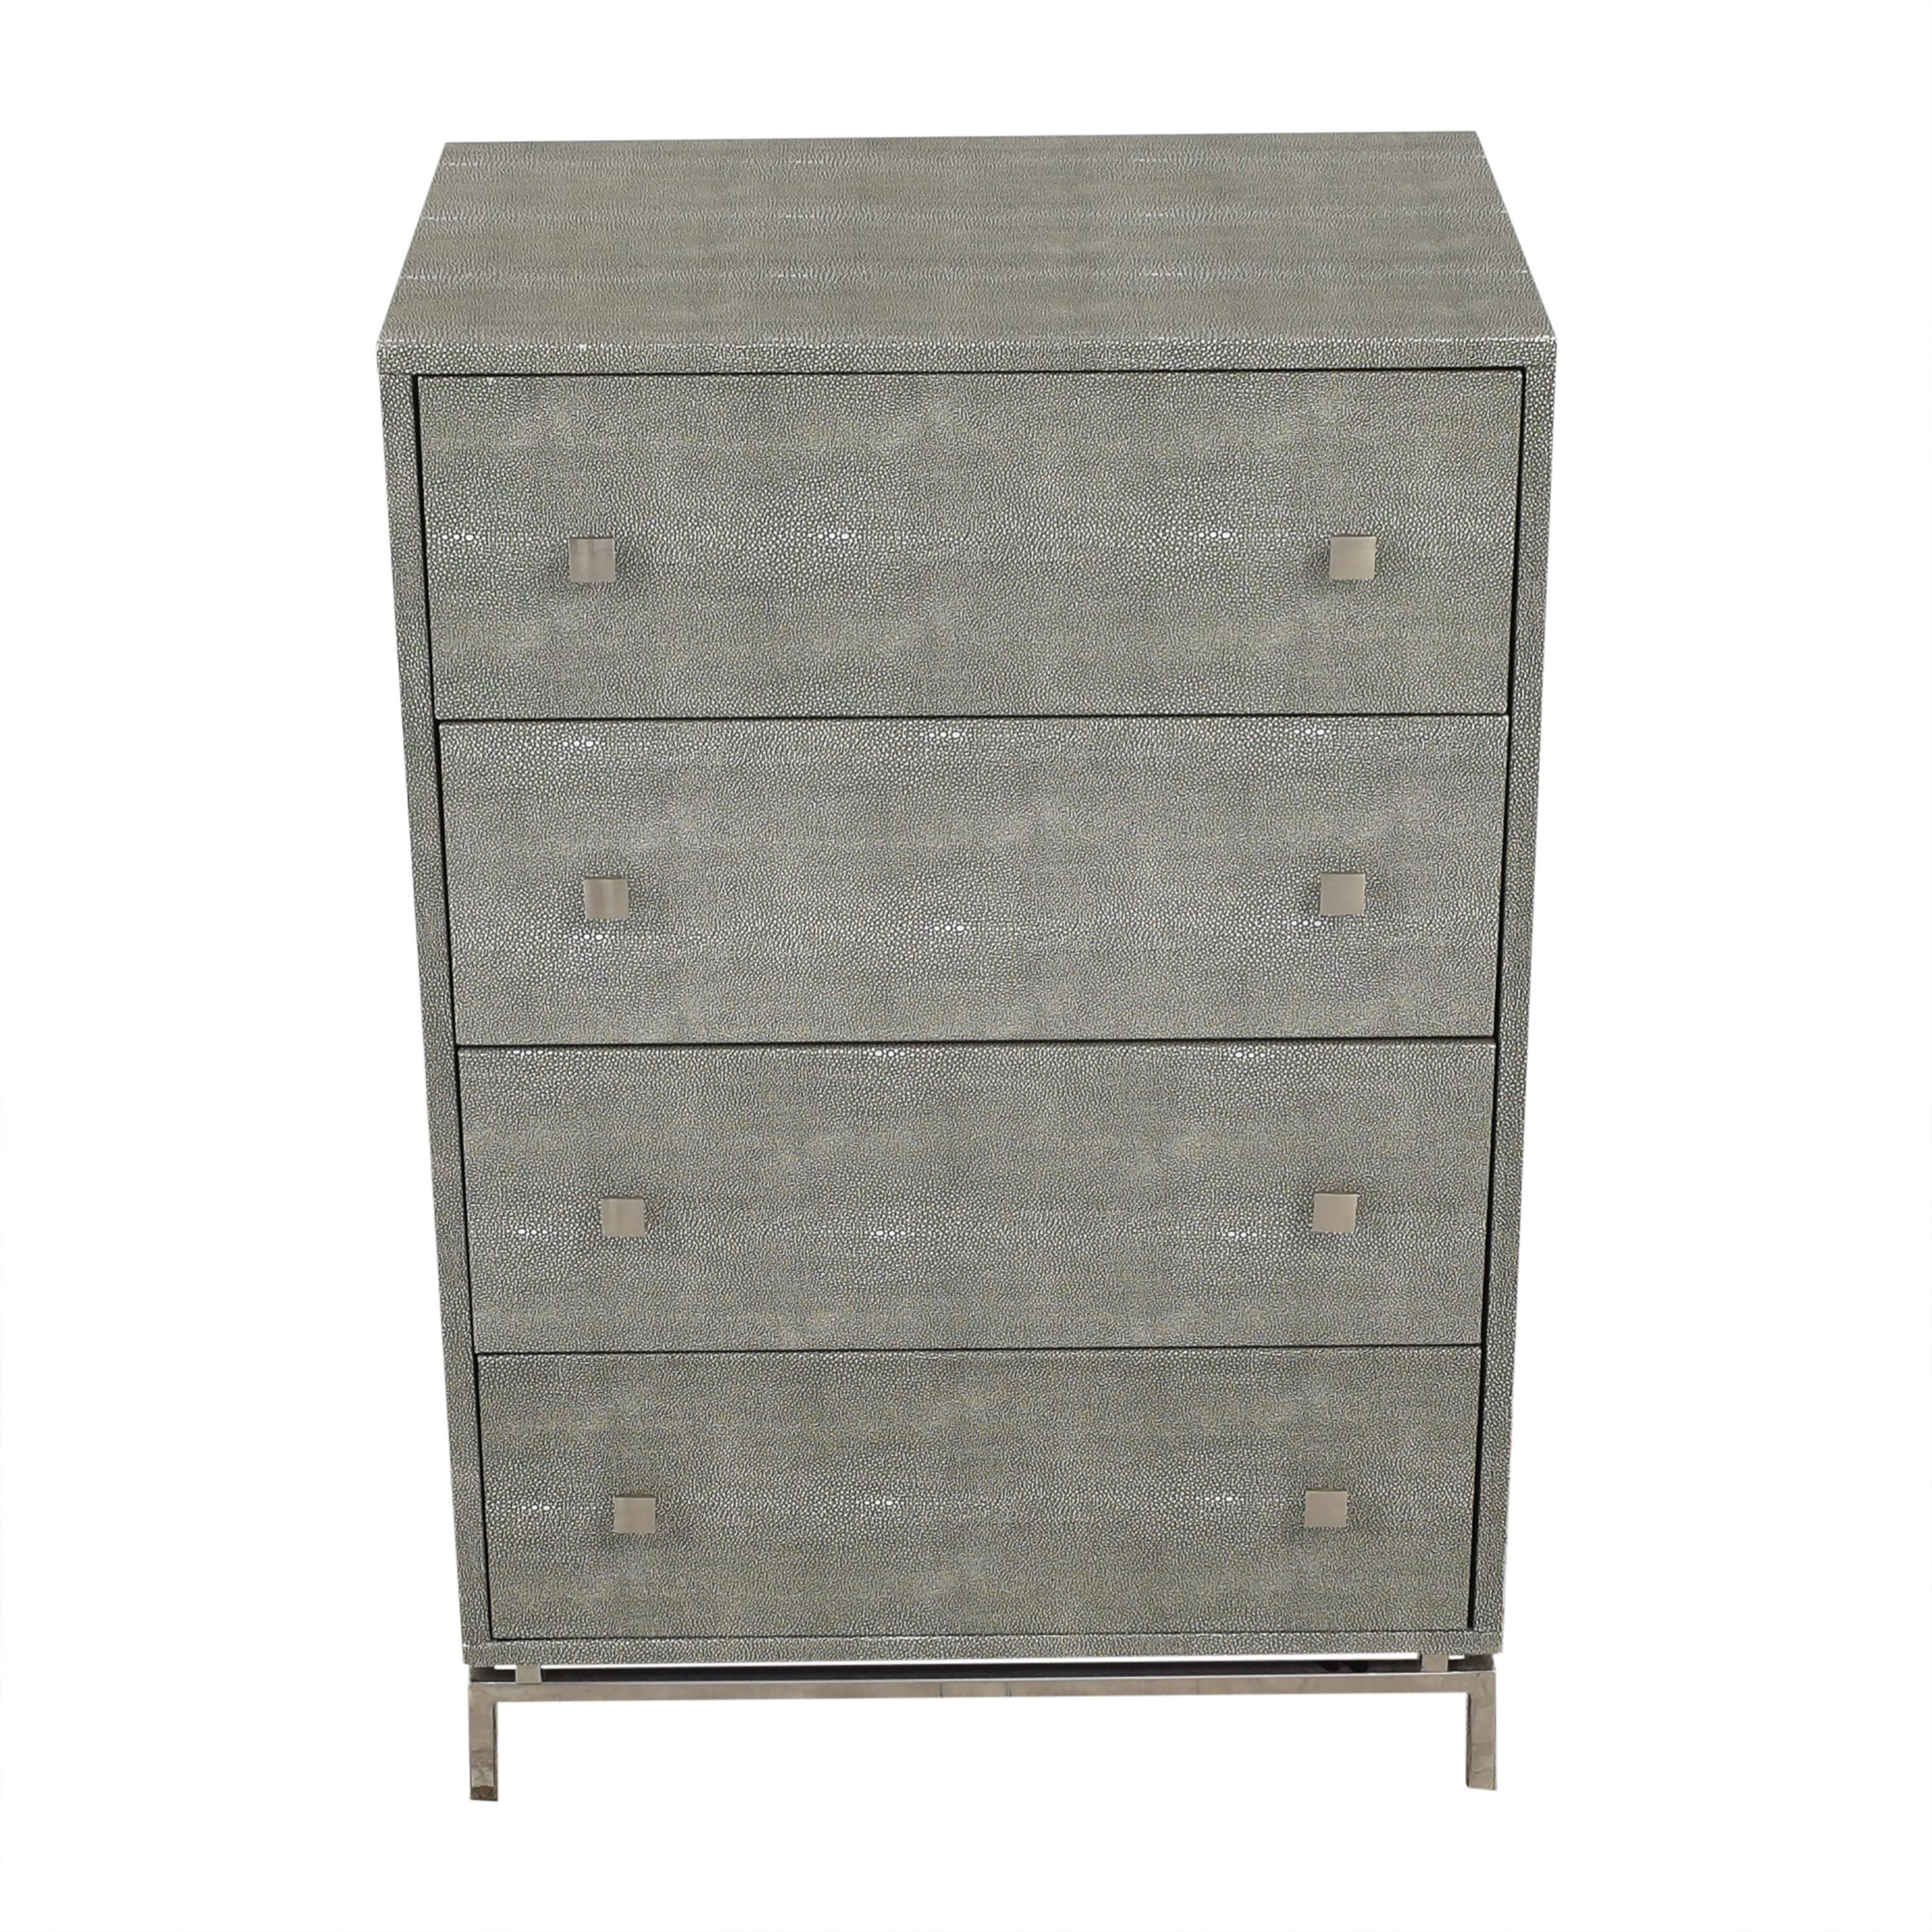 CB2 CB2 Shagreen Embossed Tall Chest ma